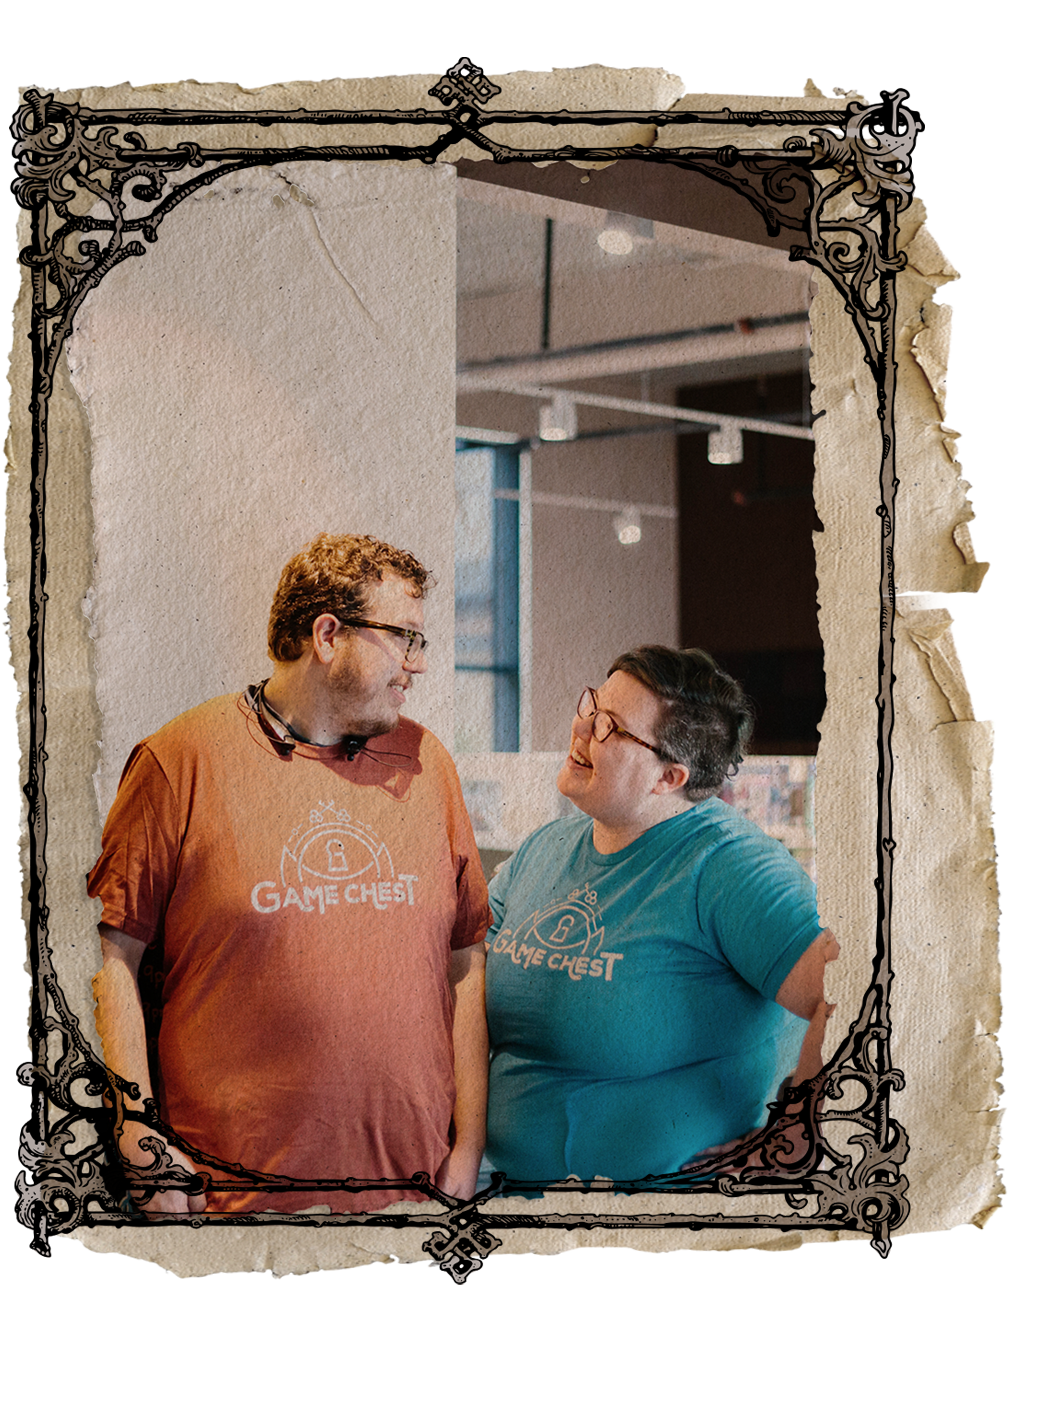 our story - We're Ben & Amanda, owners of Game Chest. We saw a desire and need for a community around friends, family, professional nerds and n00bs to hang out, converse and have fun with table top games of all kinds. We couldn't be more proud of the community we've built and can't wait to meet you.Follow our story